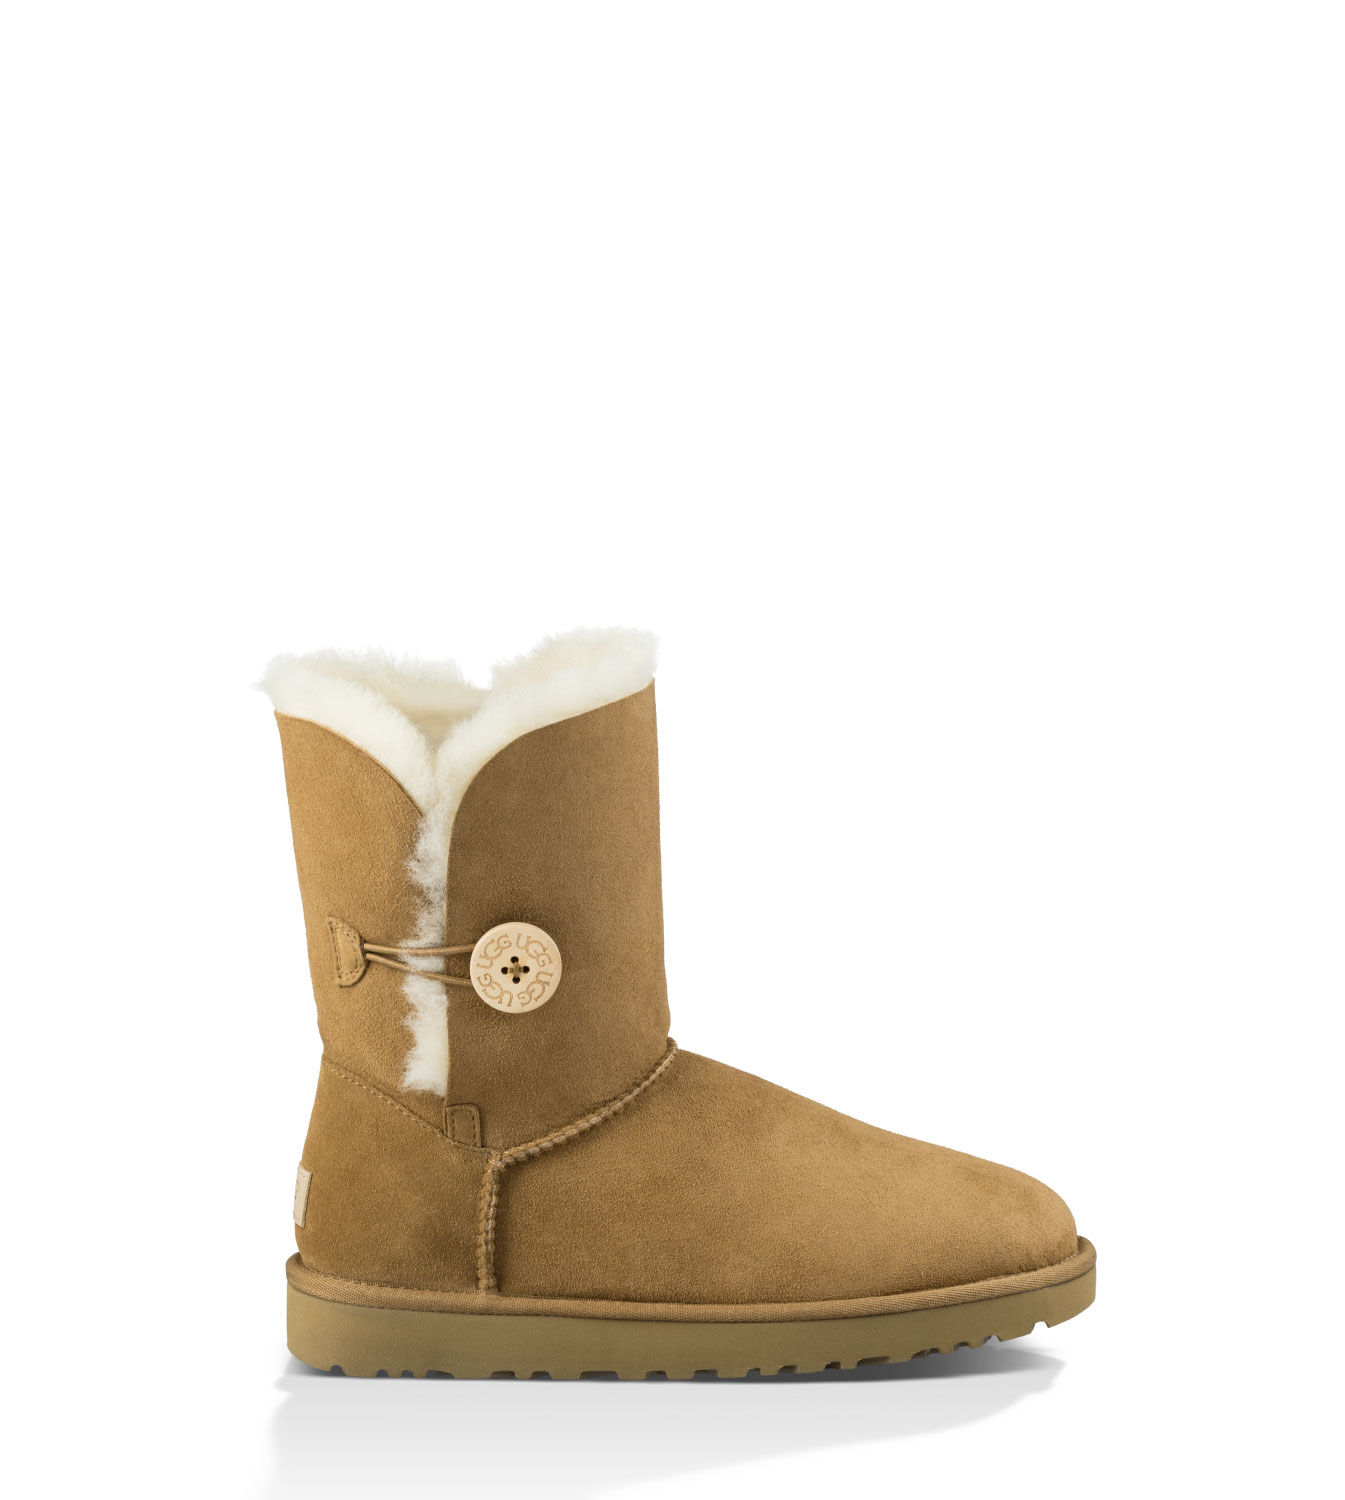 ugg bailey button boots womens grey 5803 ugg